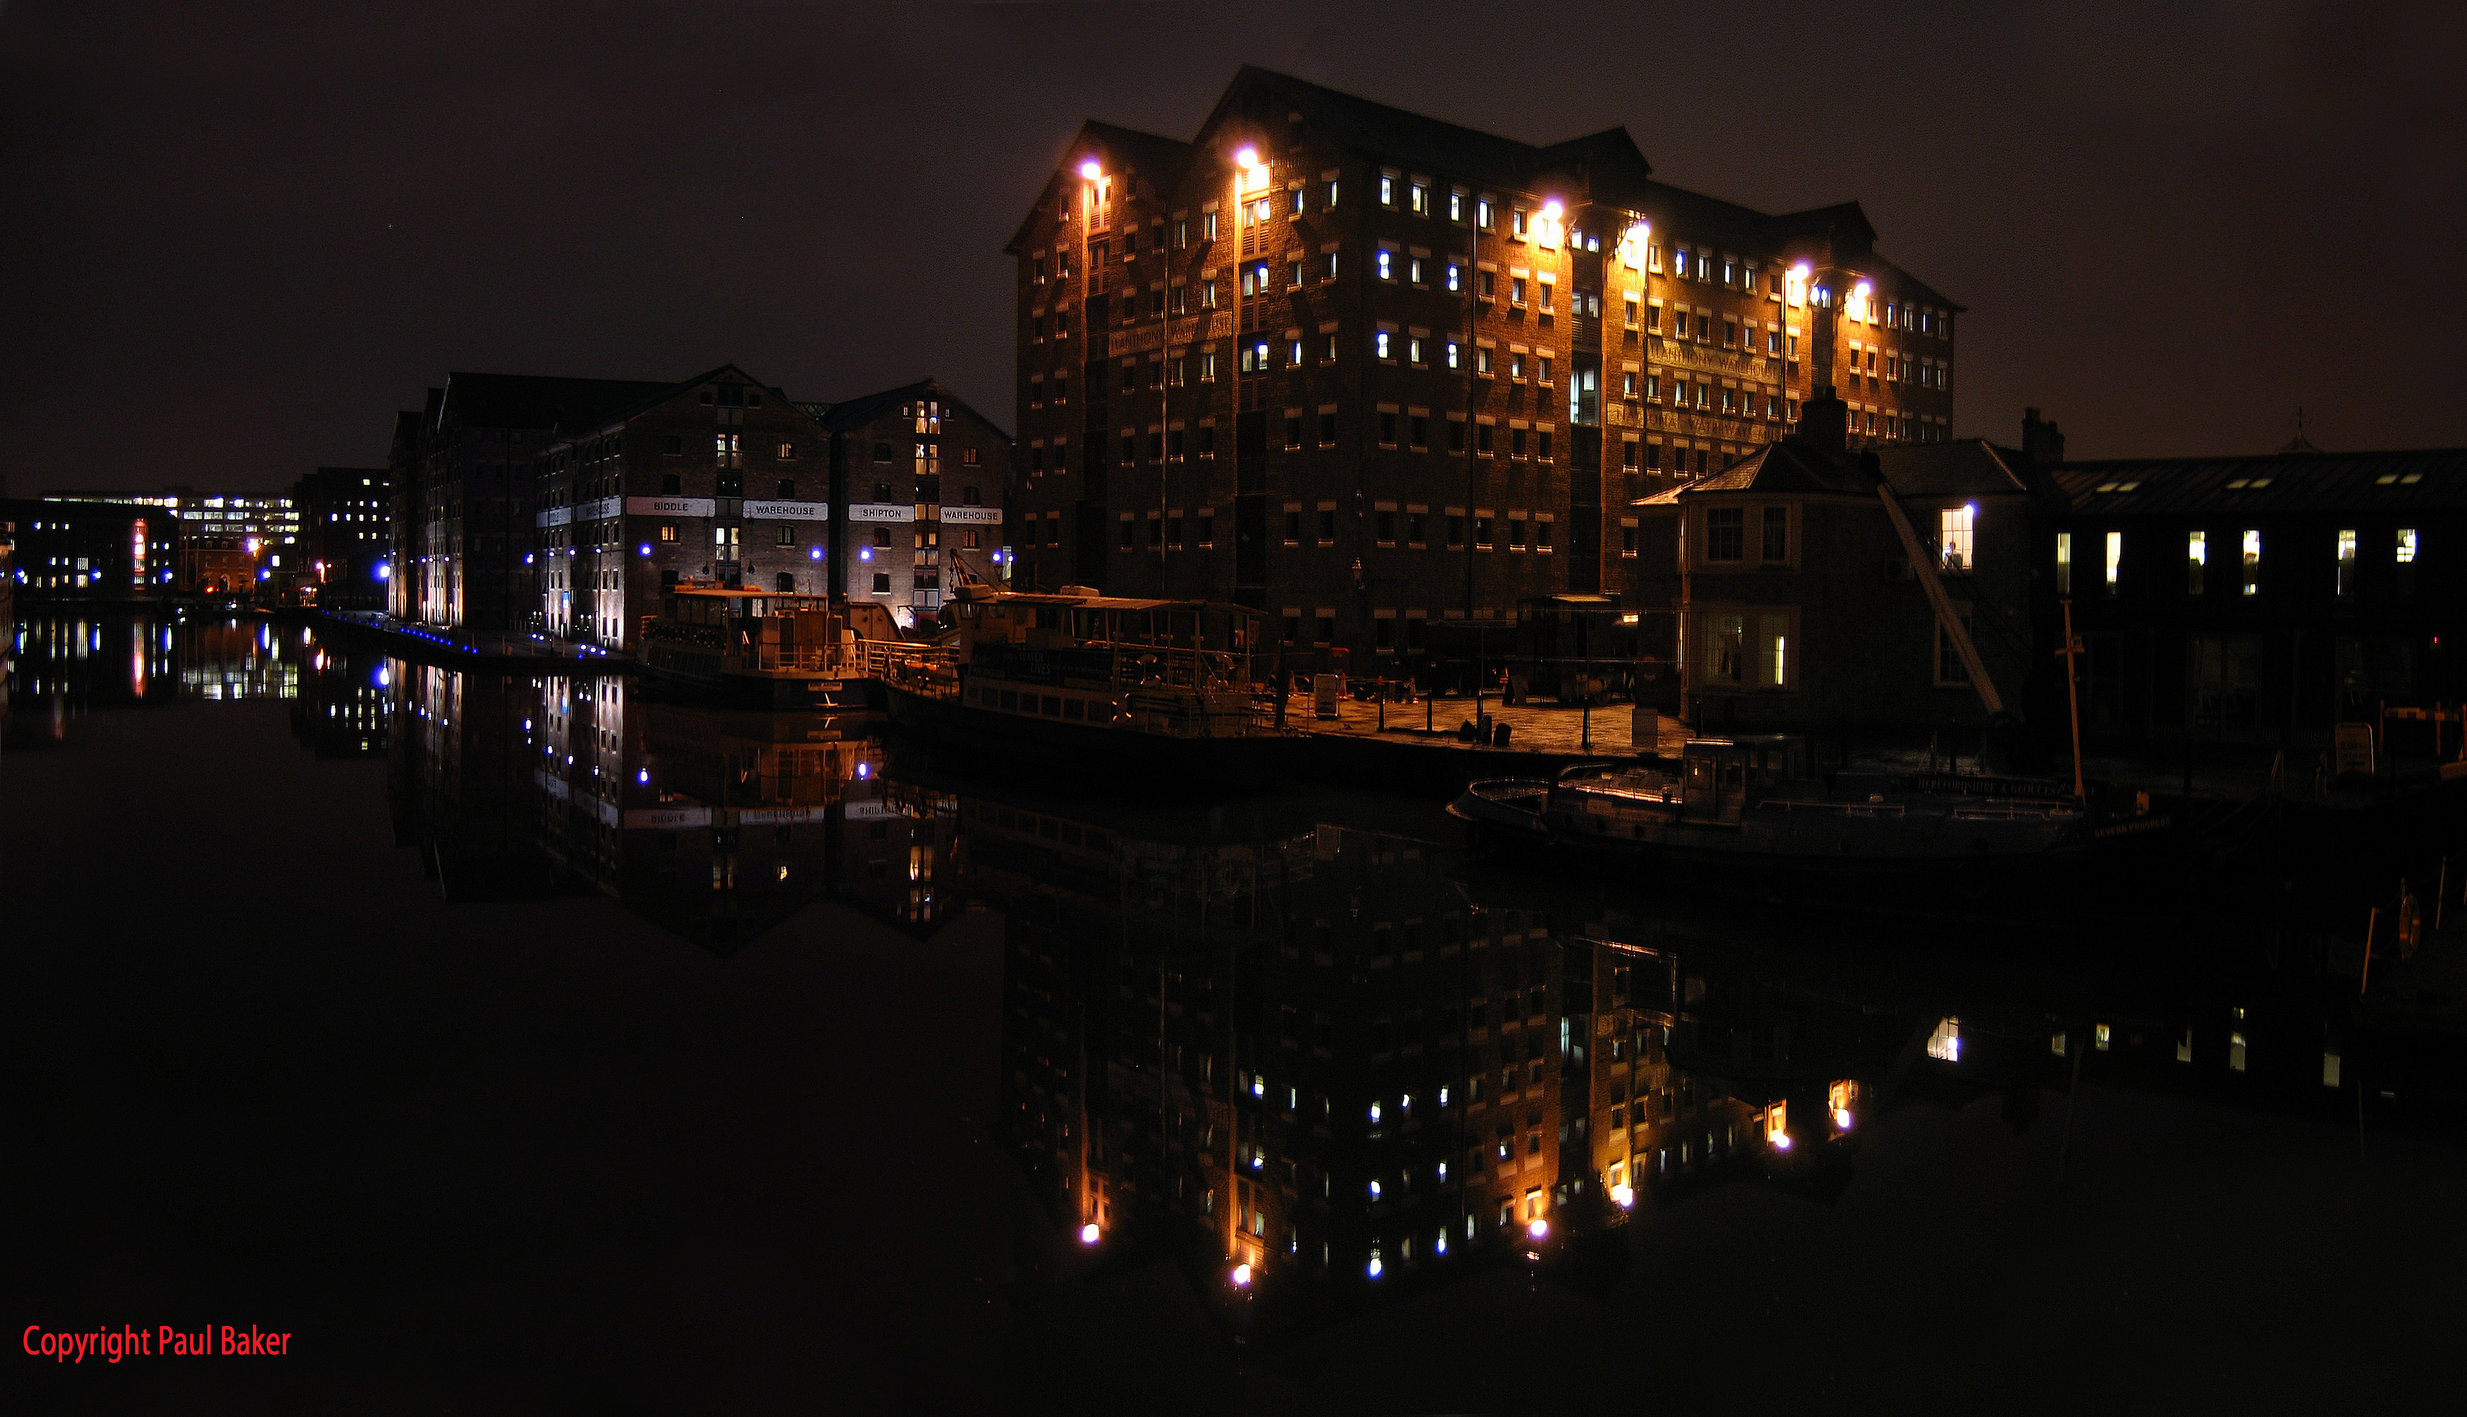 Docks at night photo